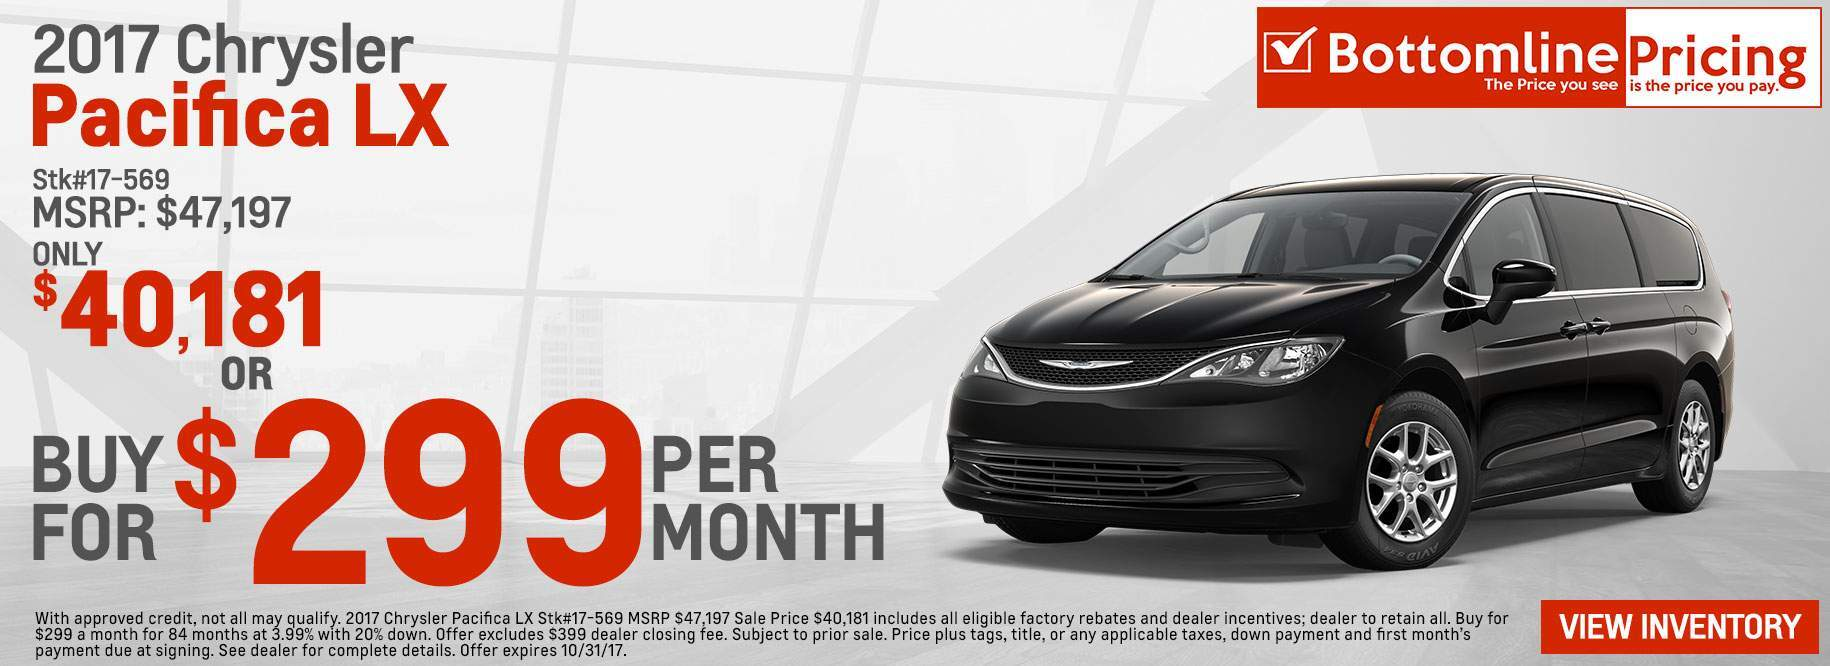 Davis Moore Chevrolet Is Your Chevy Dealer In Wichita For